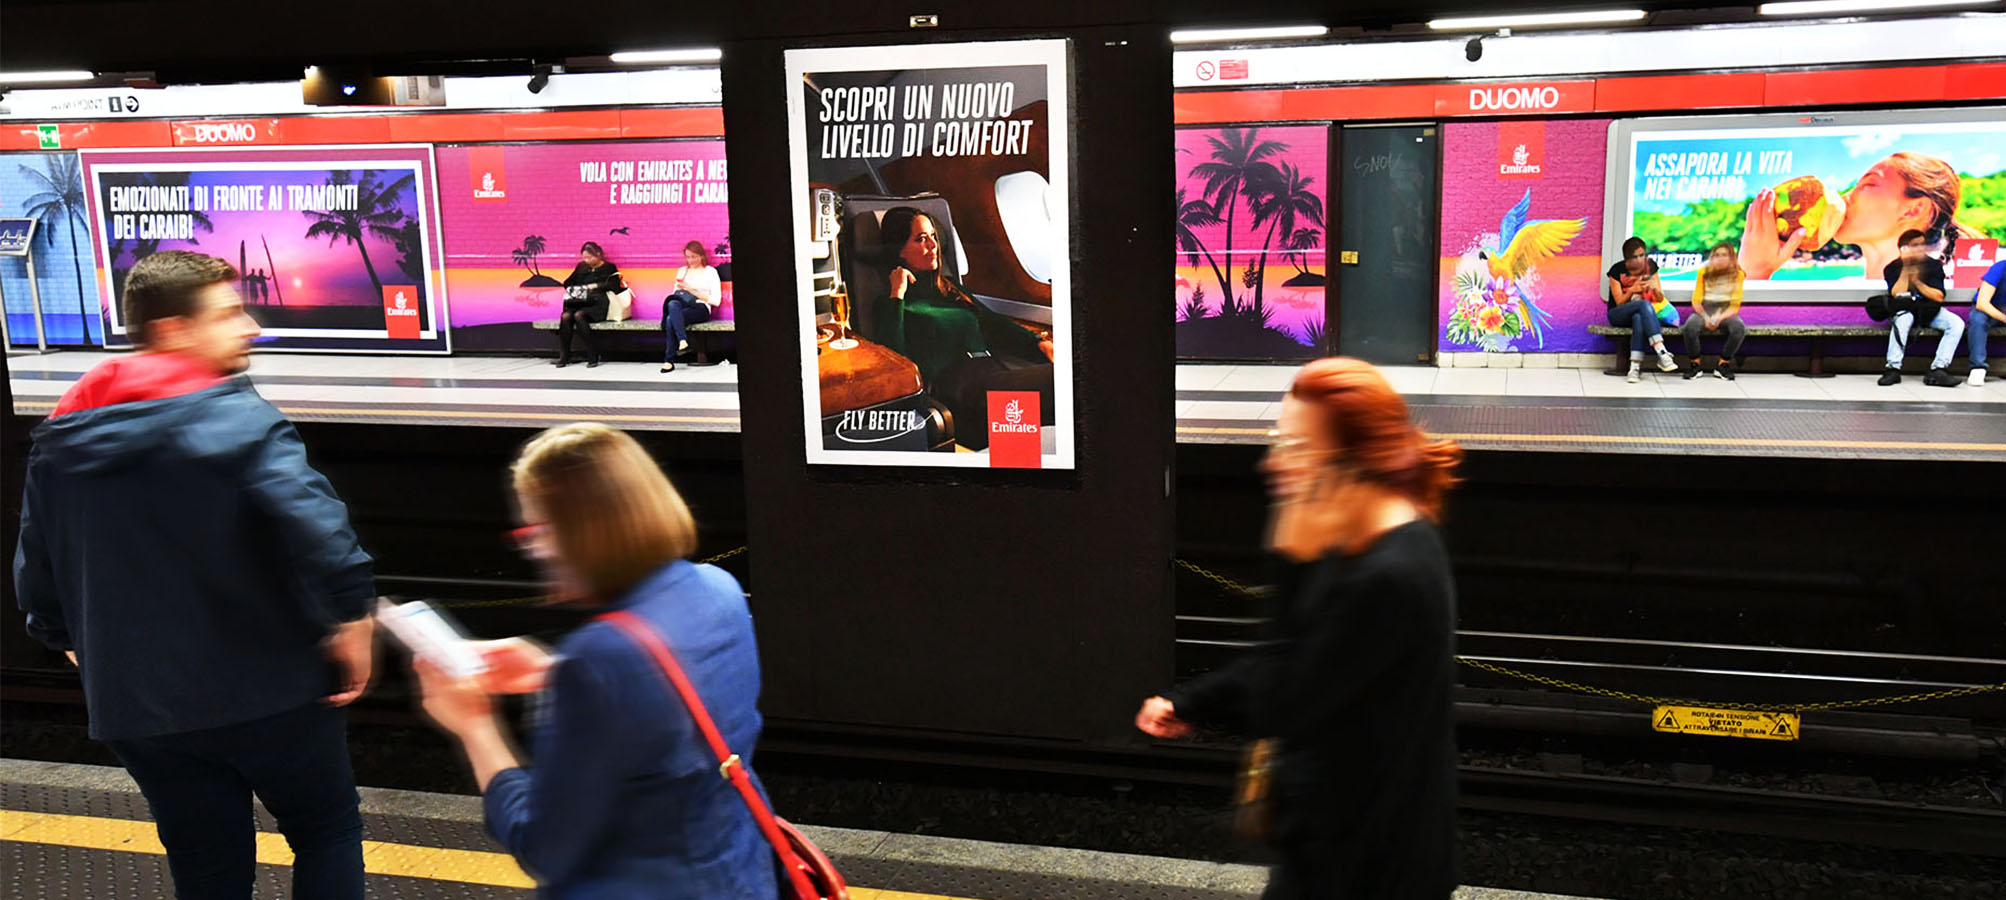 Station Domination in Milan for Emirates